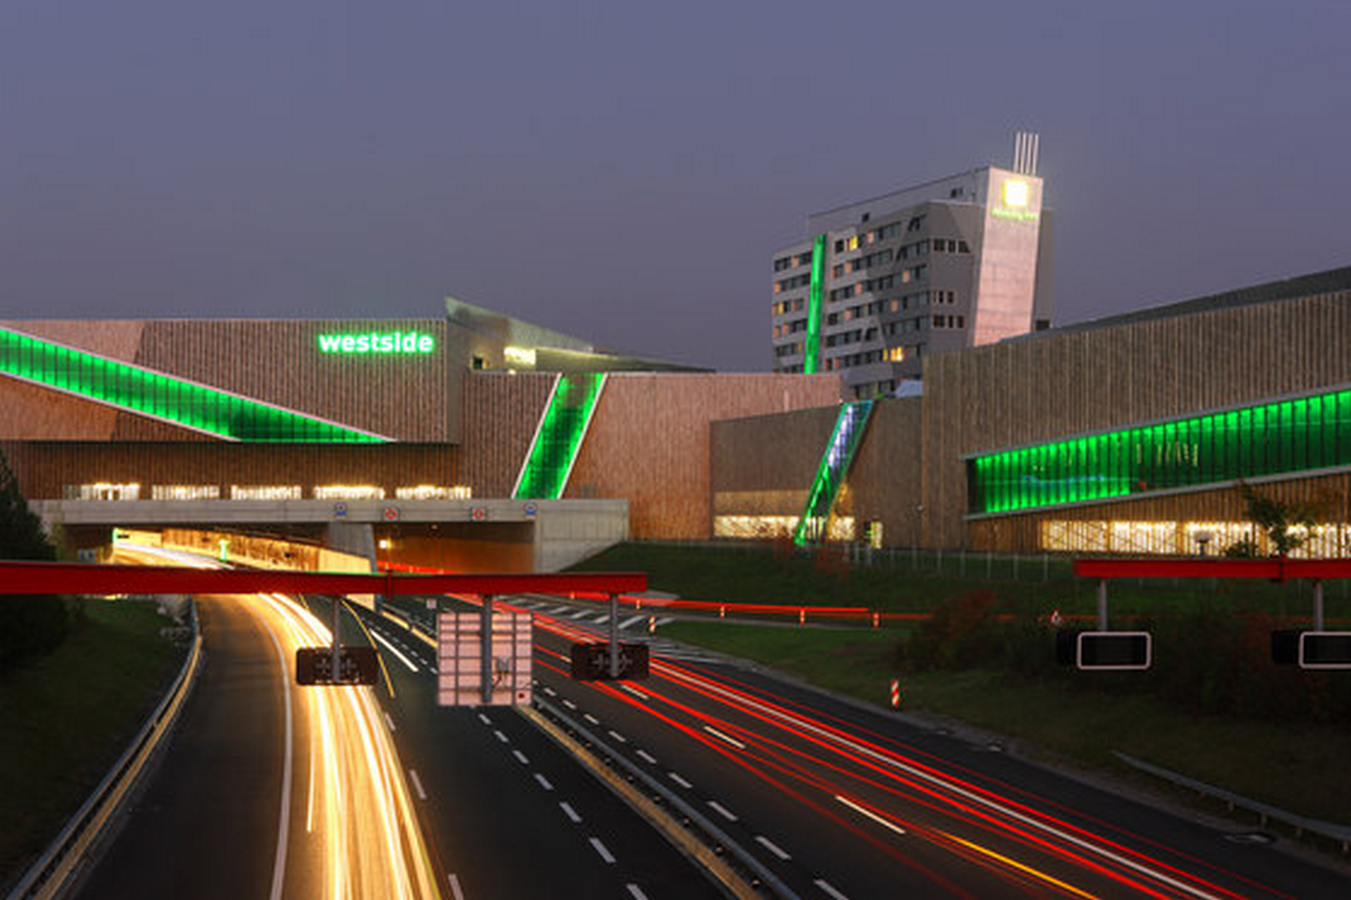 Westside Shopping and Leisure Centre by Daniel Libeskind: Unification of commerce, culture and leisure - Sheet9